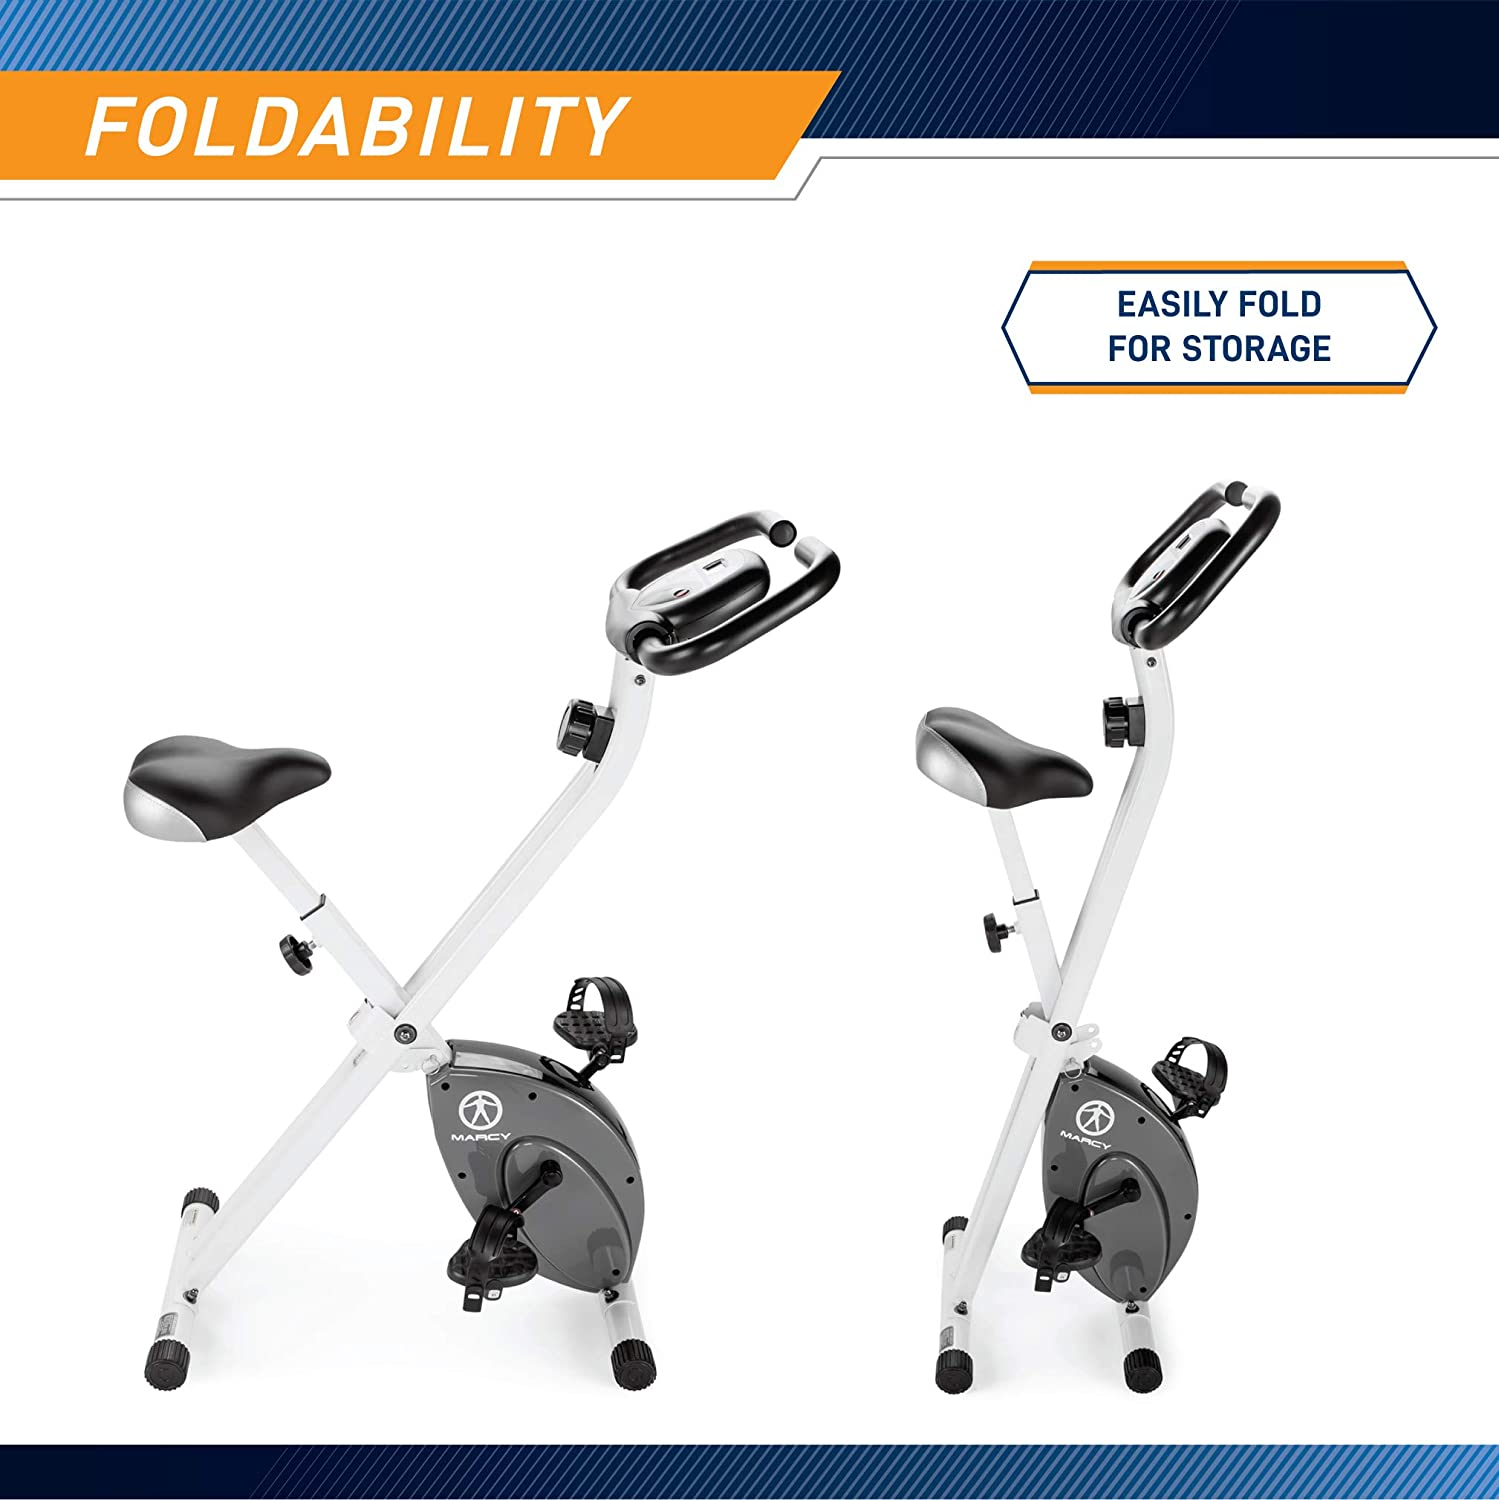 Marcy Foldable Exercise Bike Reviews In 2021 - Best 3 Model 2